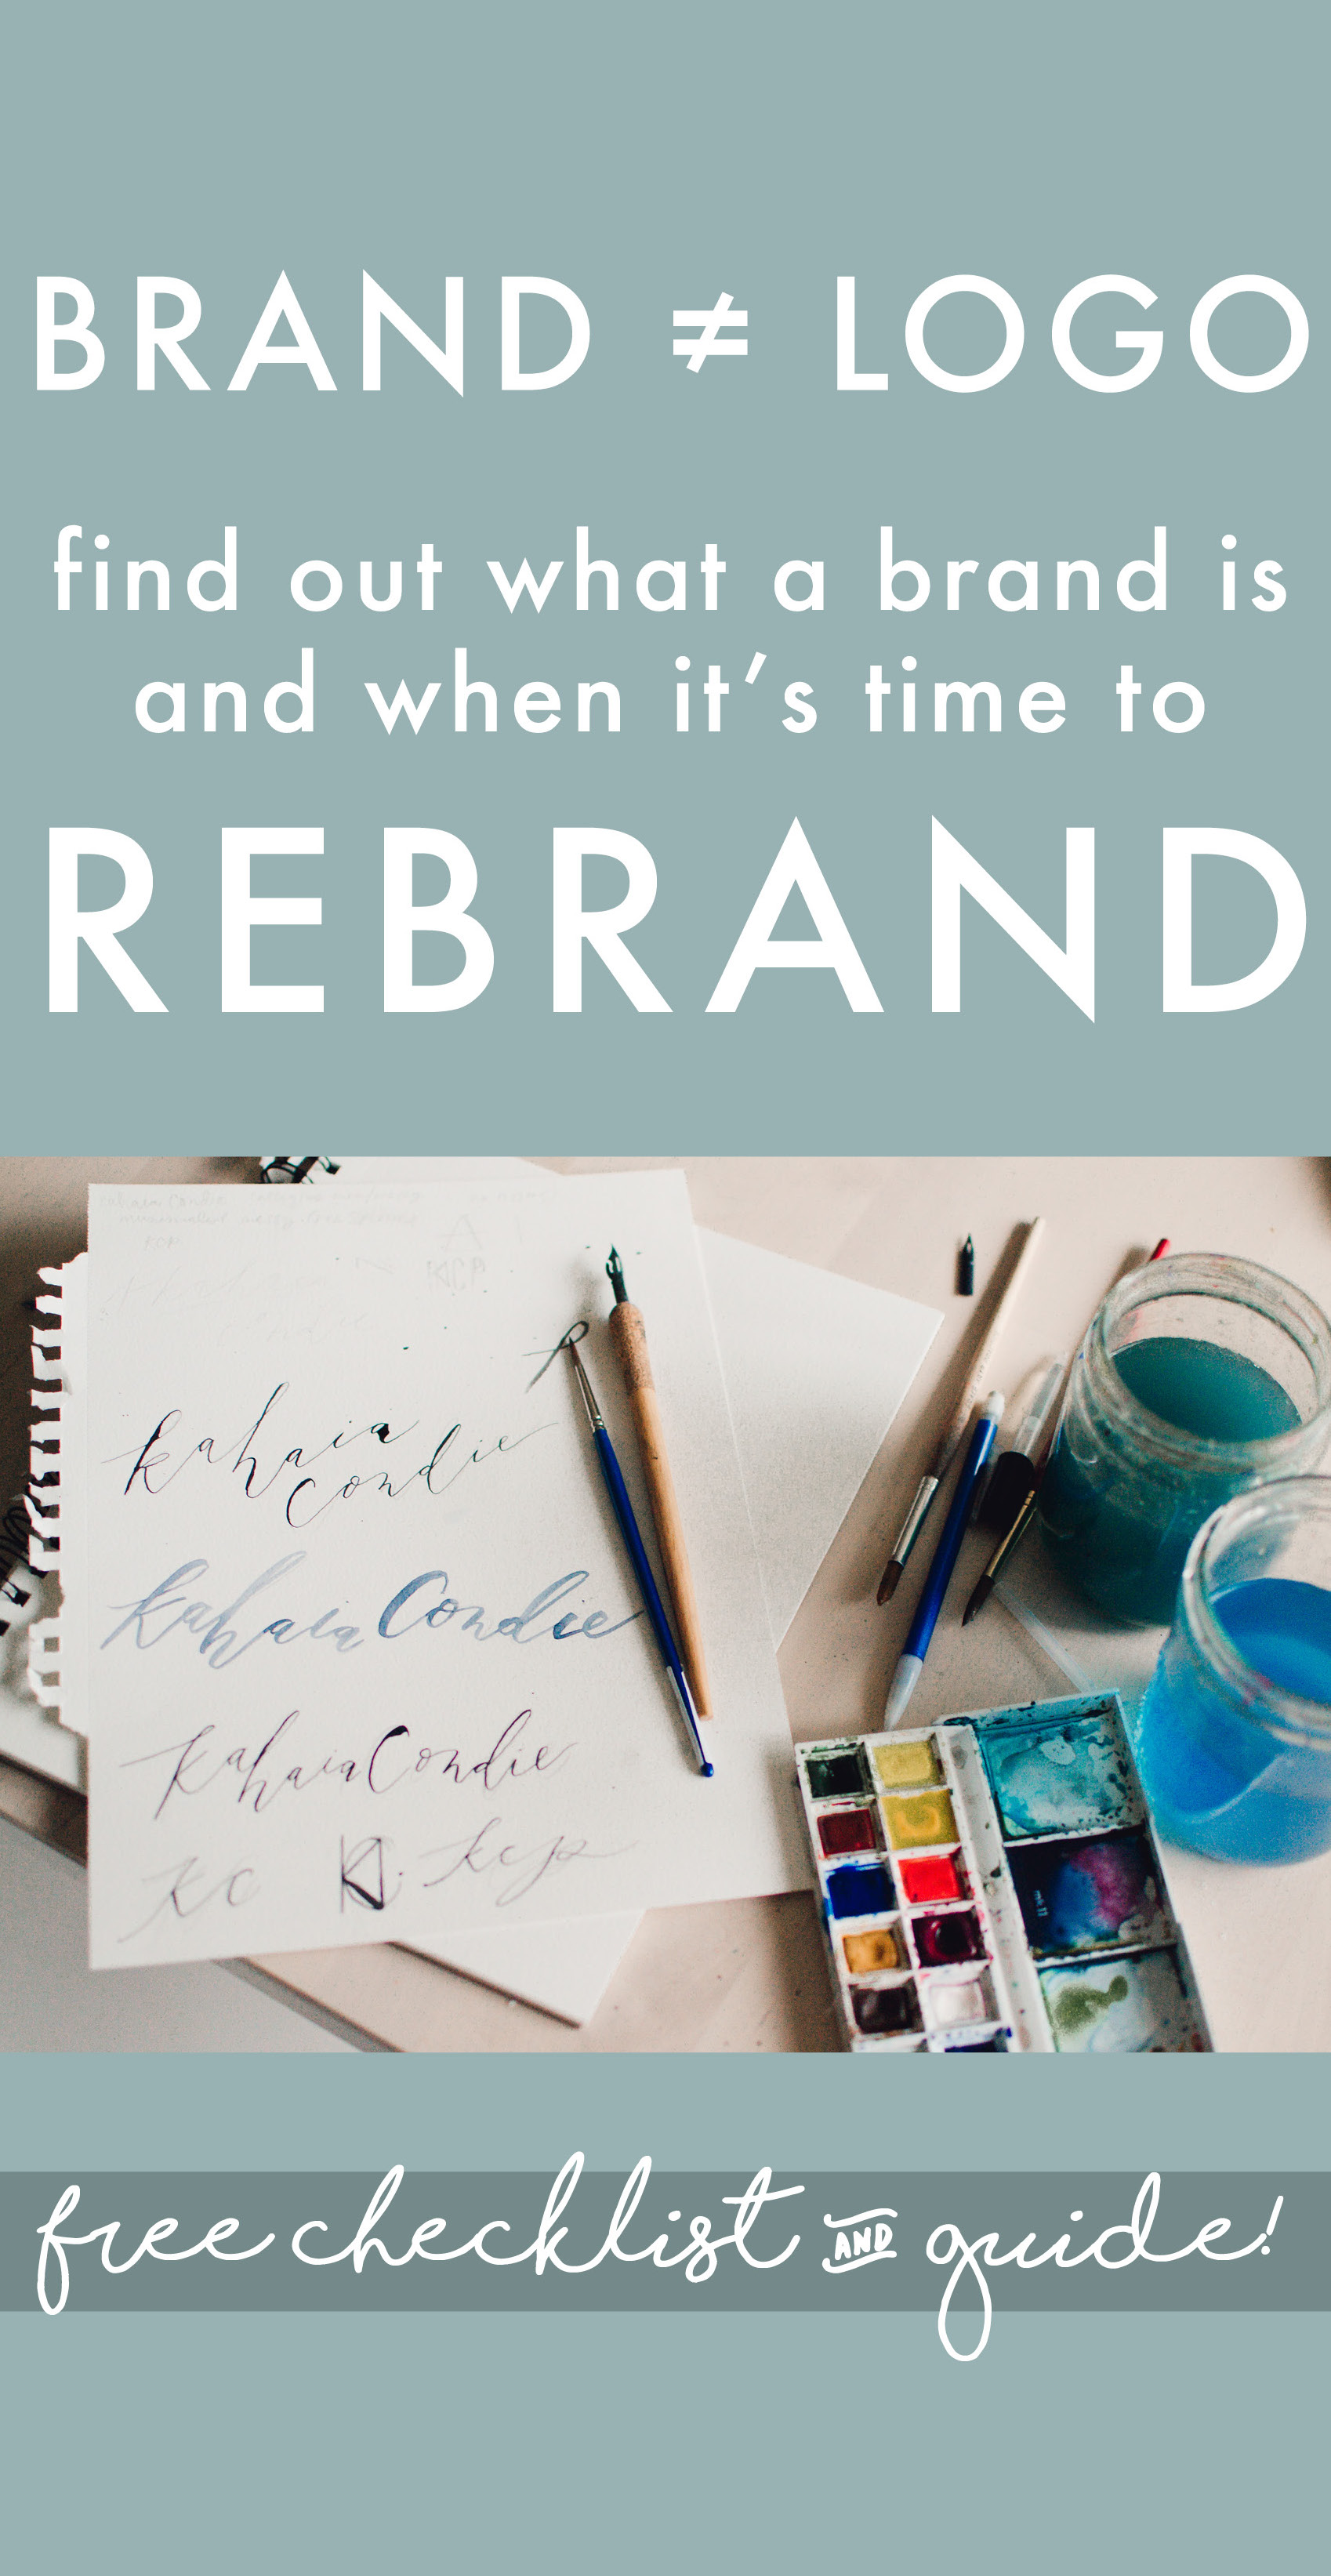 When to rebrand